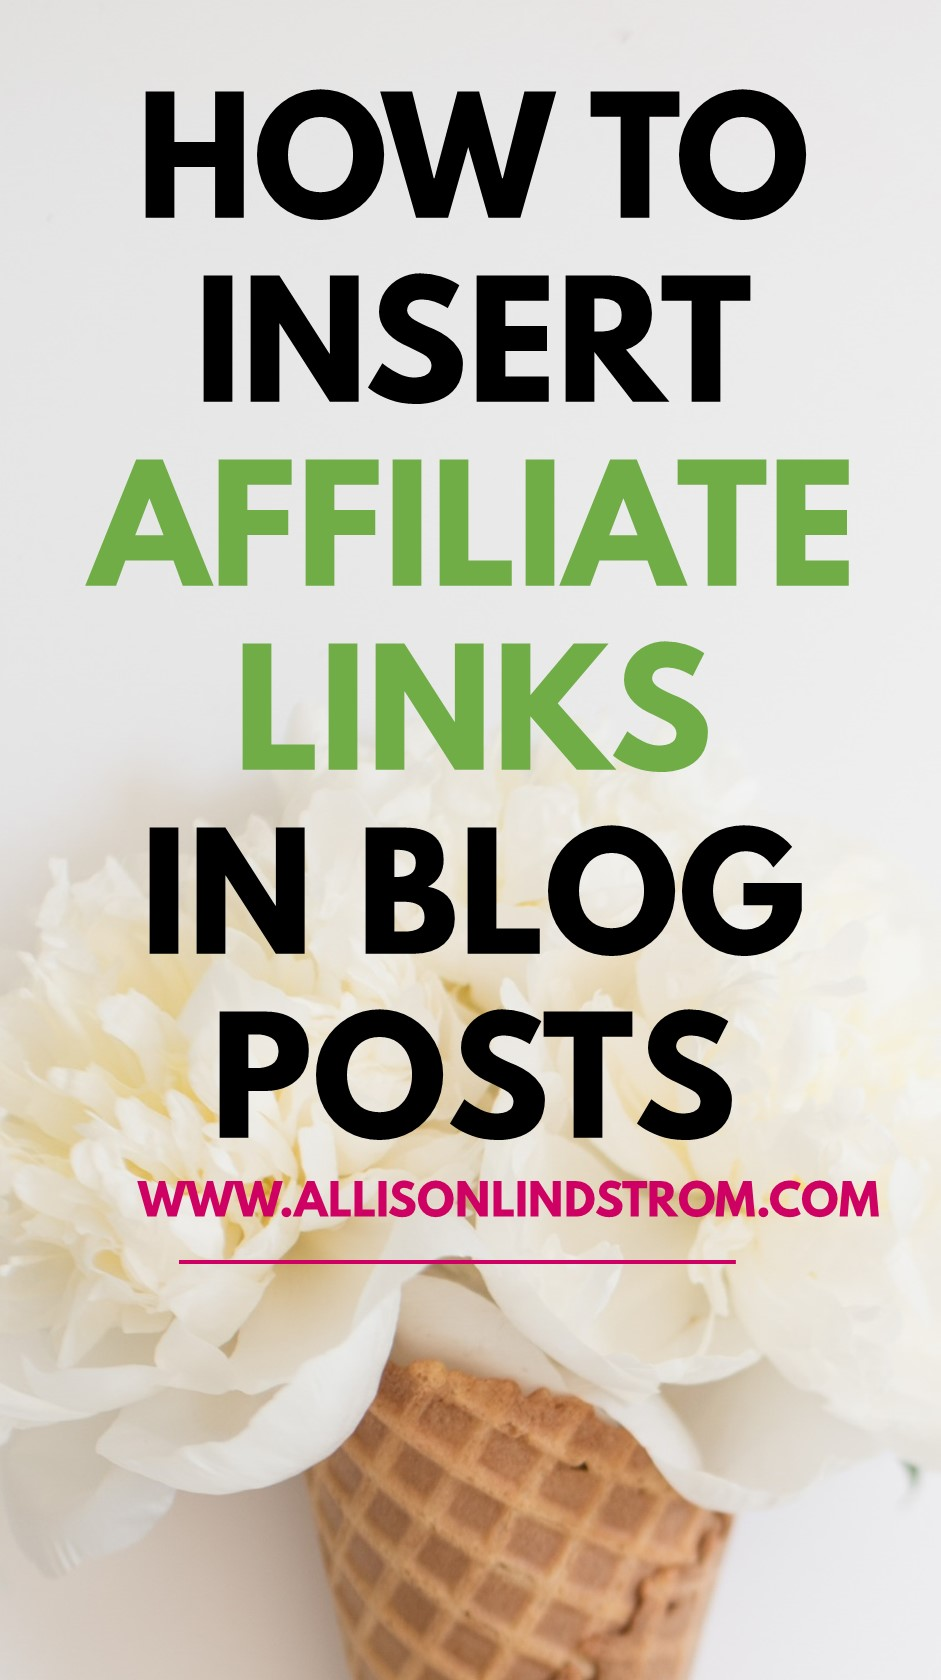 Enjoy this sneak peak in my Blogging to Win course and learn how to insert an affiliate link in your Wordpress posts! You can use this for Amazon affiliate links or almost any other affiliate program. This is the perfect tutorial if you've been wanting to add an additional way to make money on your blog. ● HOW TO INSERT AFFILIATE LINKS IN YOUR POST ● AMAZON AFFILIATE AND OTHER PROGRAMS